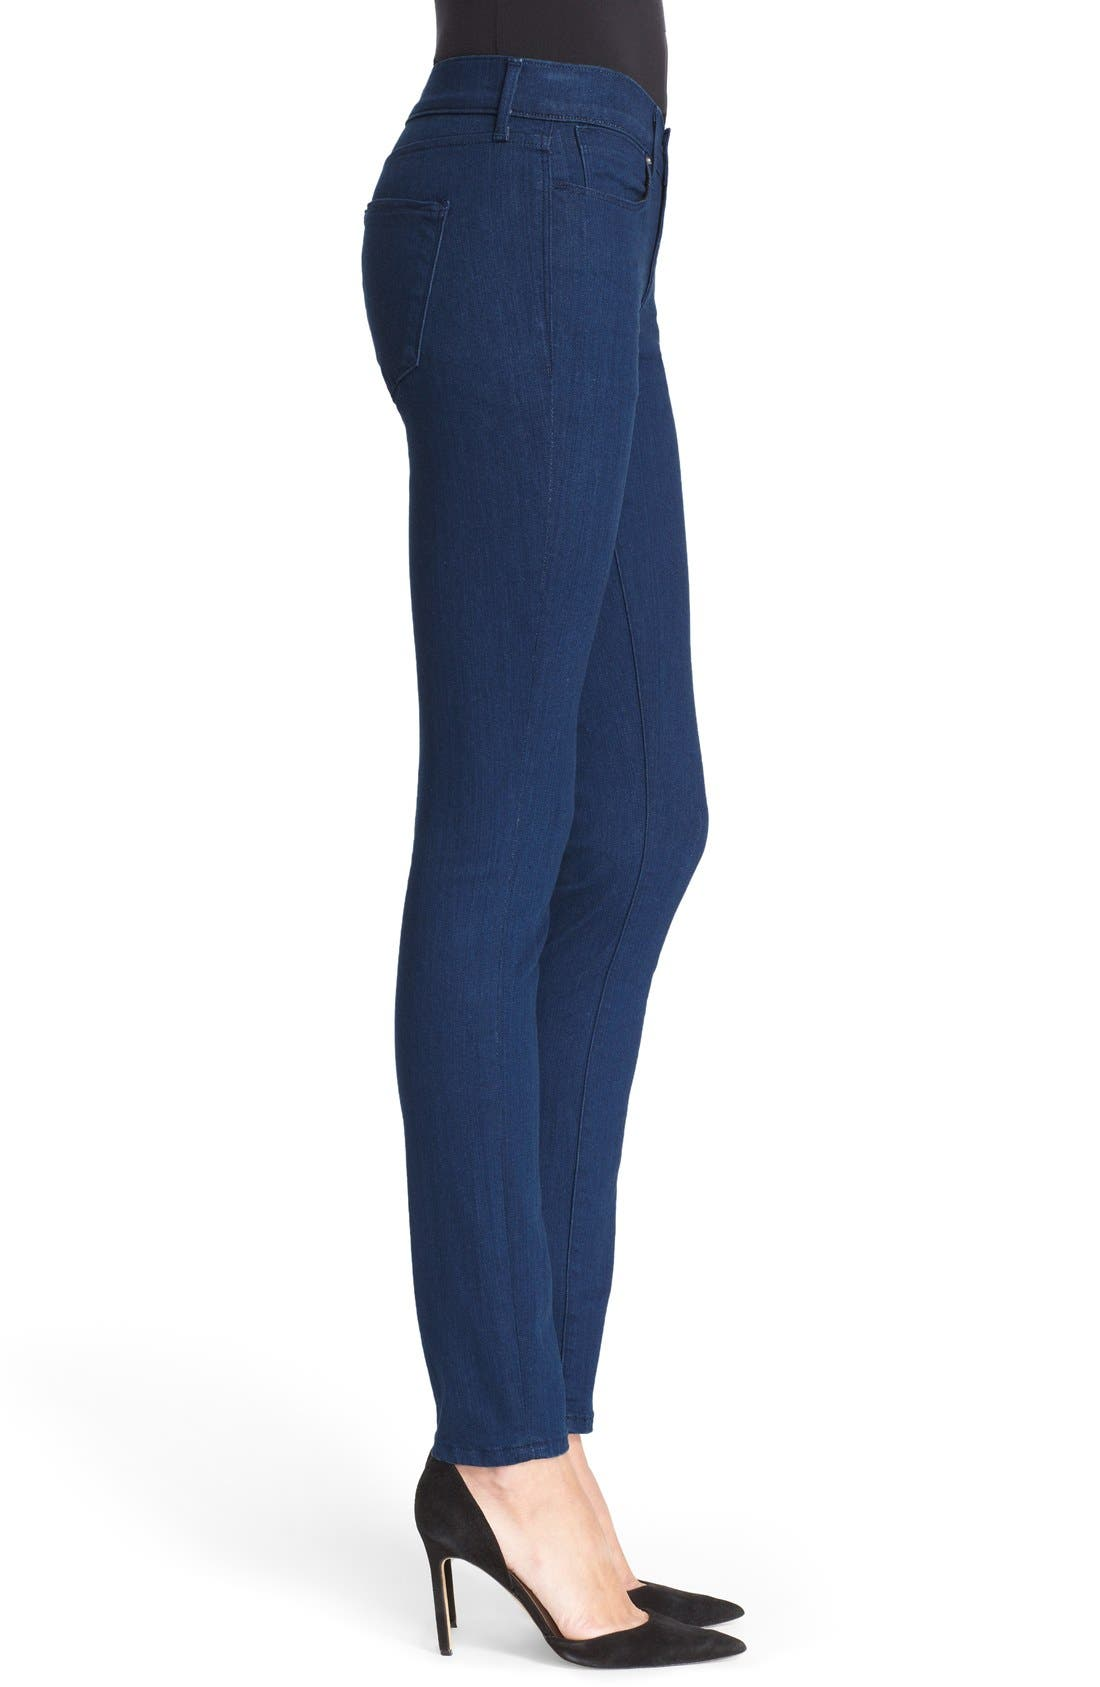 'The Skinny' Stretch Jeans,                             Alternate thumbnail 3, color,                             400